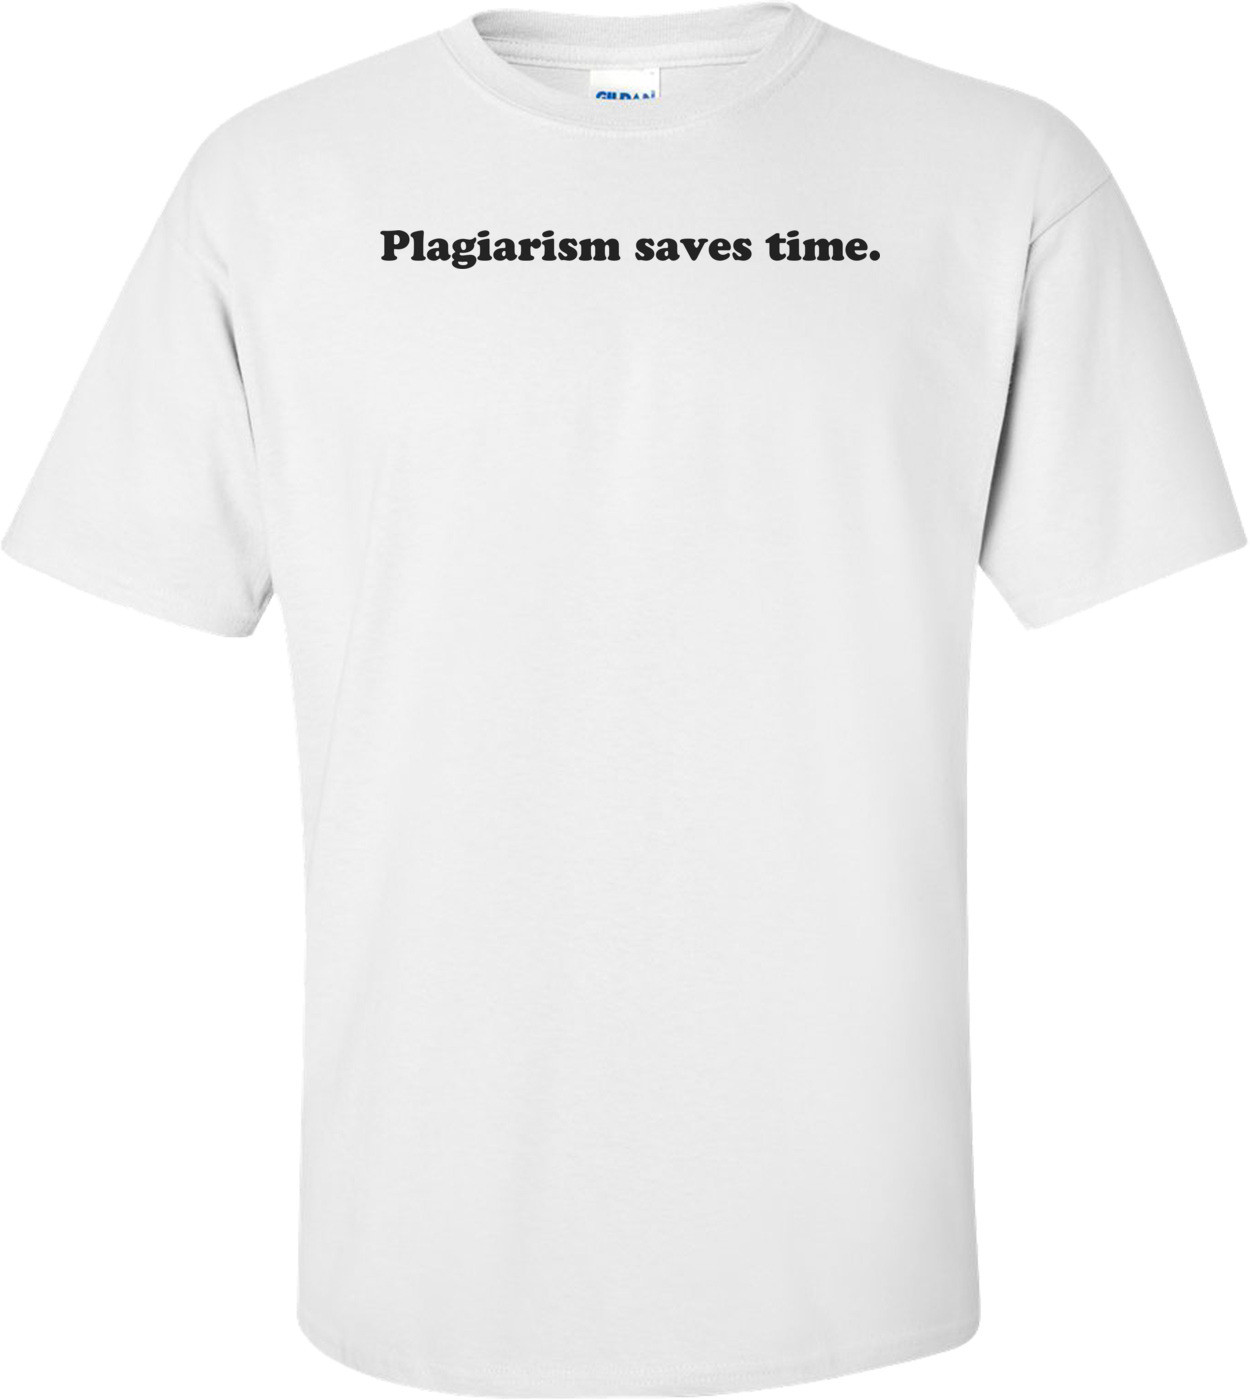 Plagiarism saves time. Shirt